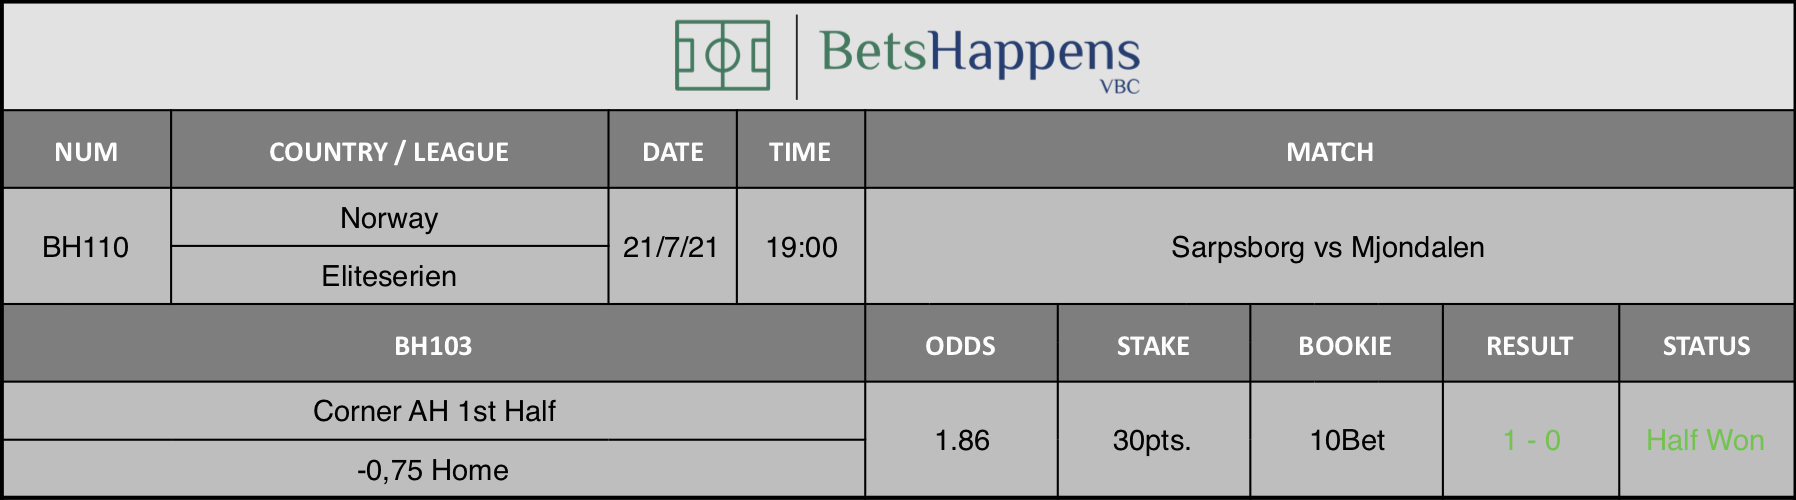 Results of our advice for the Sarpsborg vs Mjondalen match in which Corner AH 1st Half -0,75 Home is recommended.